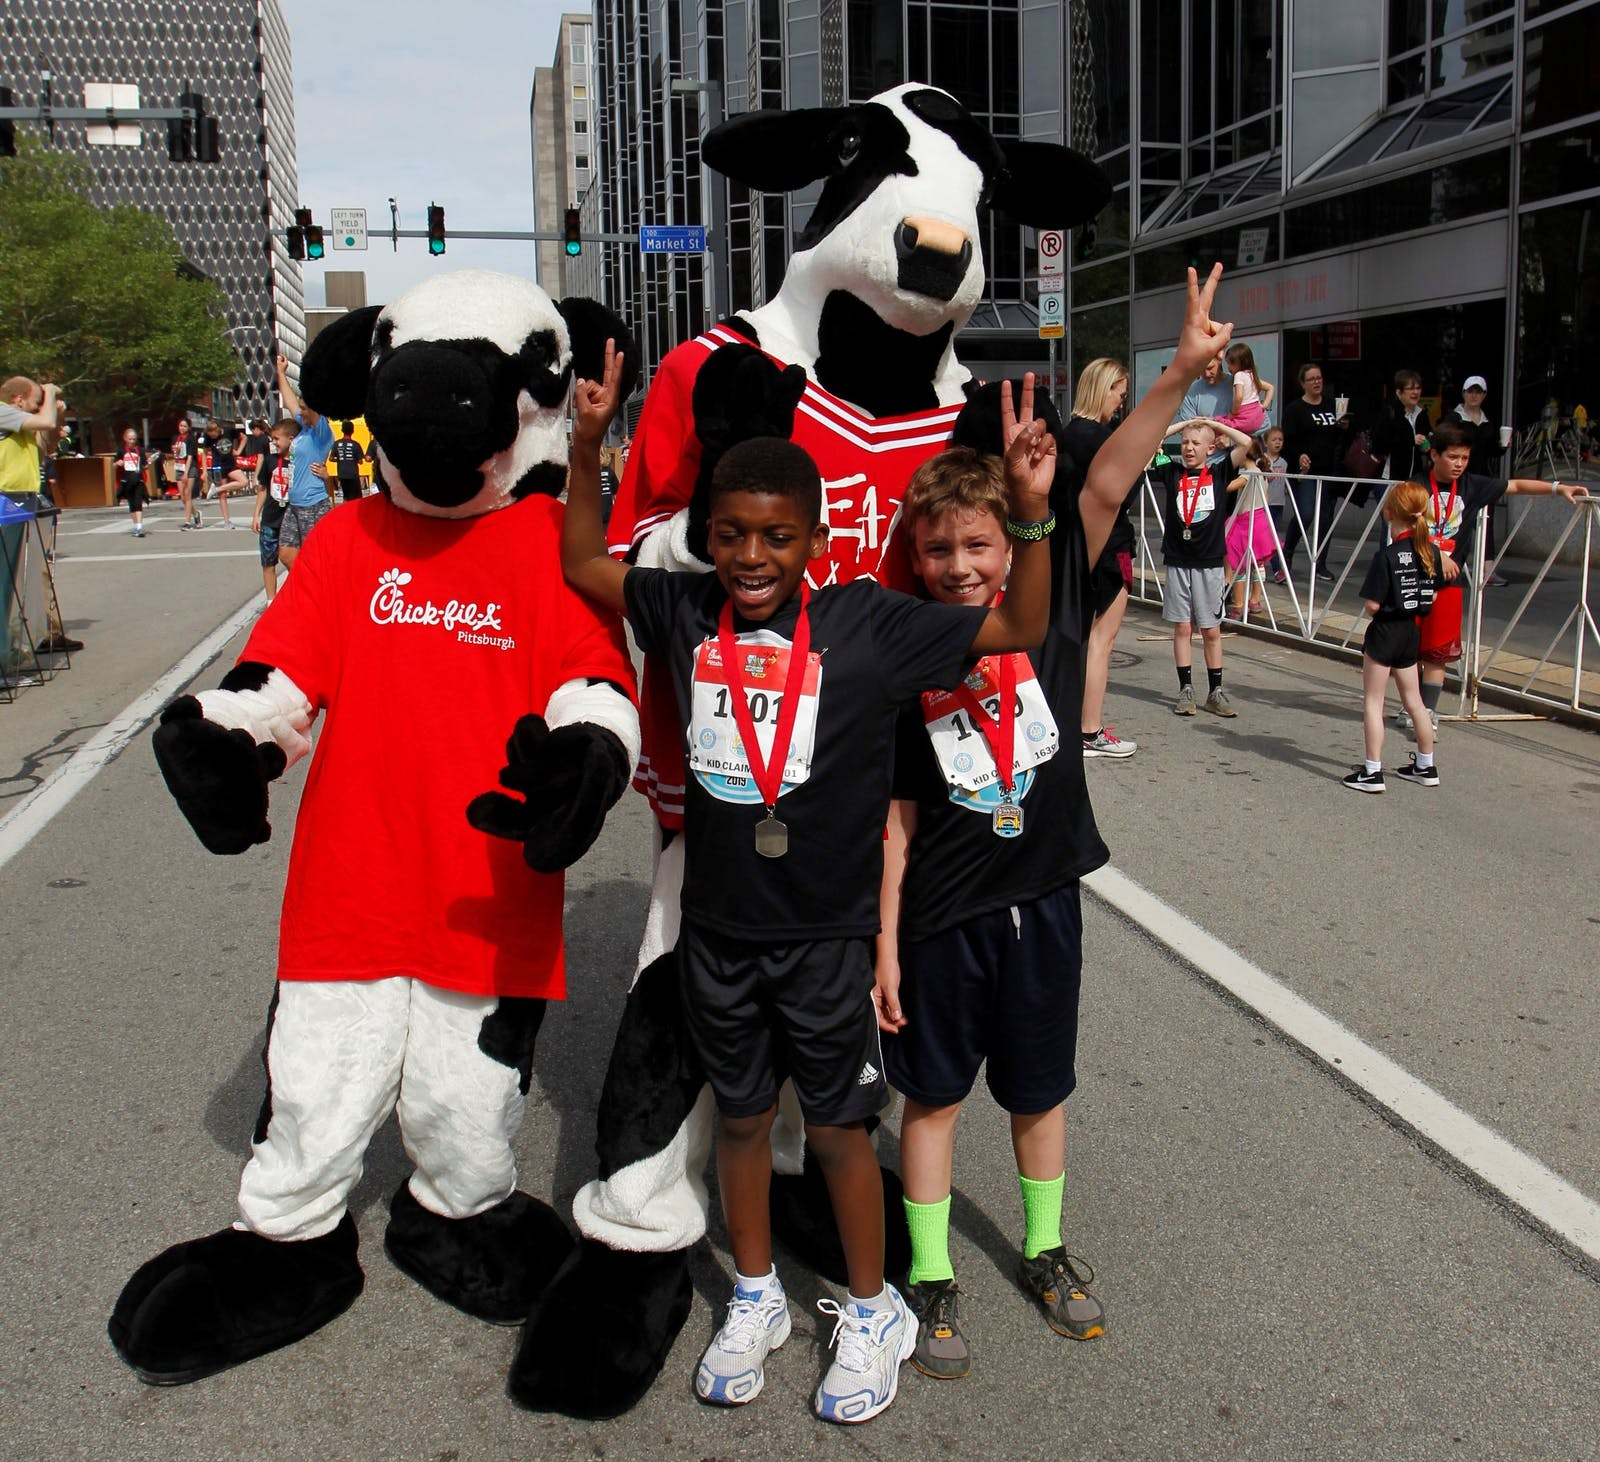 Chick Fil A's mascots with two cheering children in street